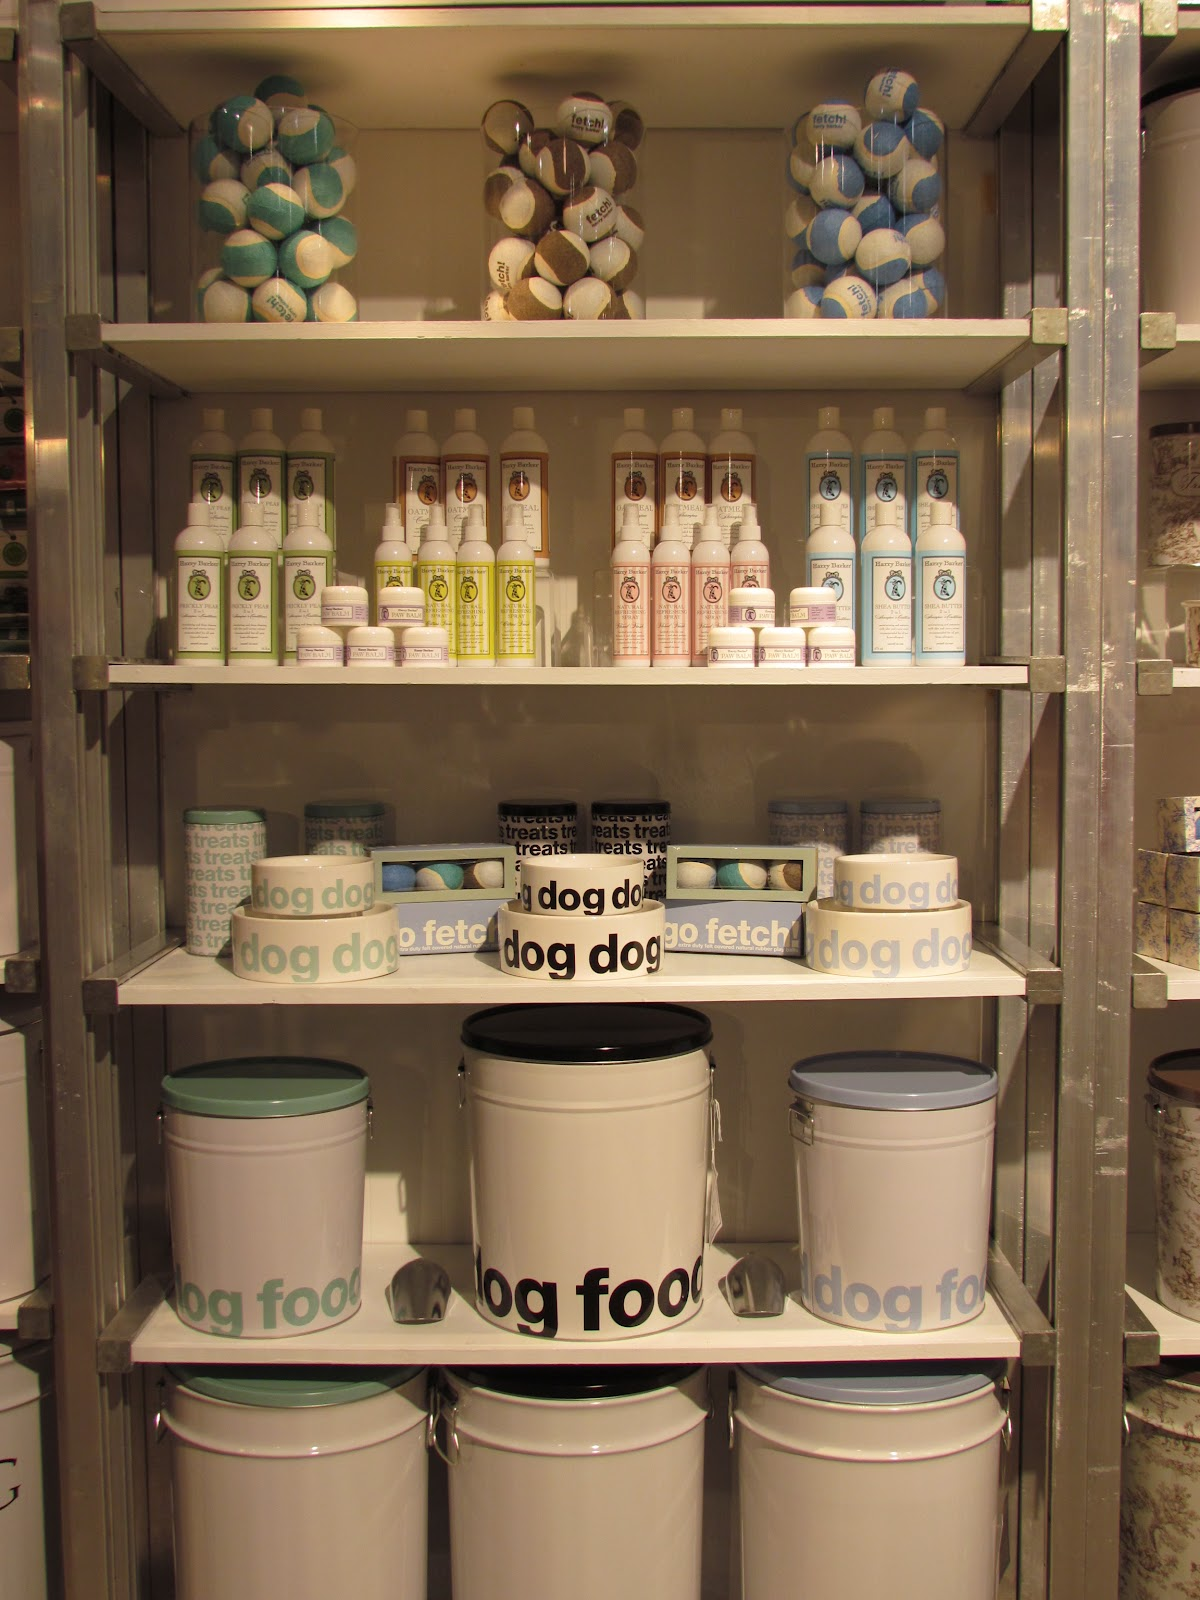 Etonnant Black And White, Great Graphics, And Simply Fitting For A Well Designed  Home To Have Design Conscious Dog Food Containers Like ...